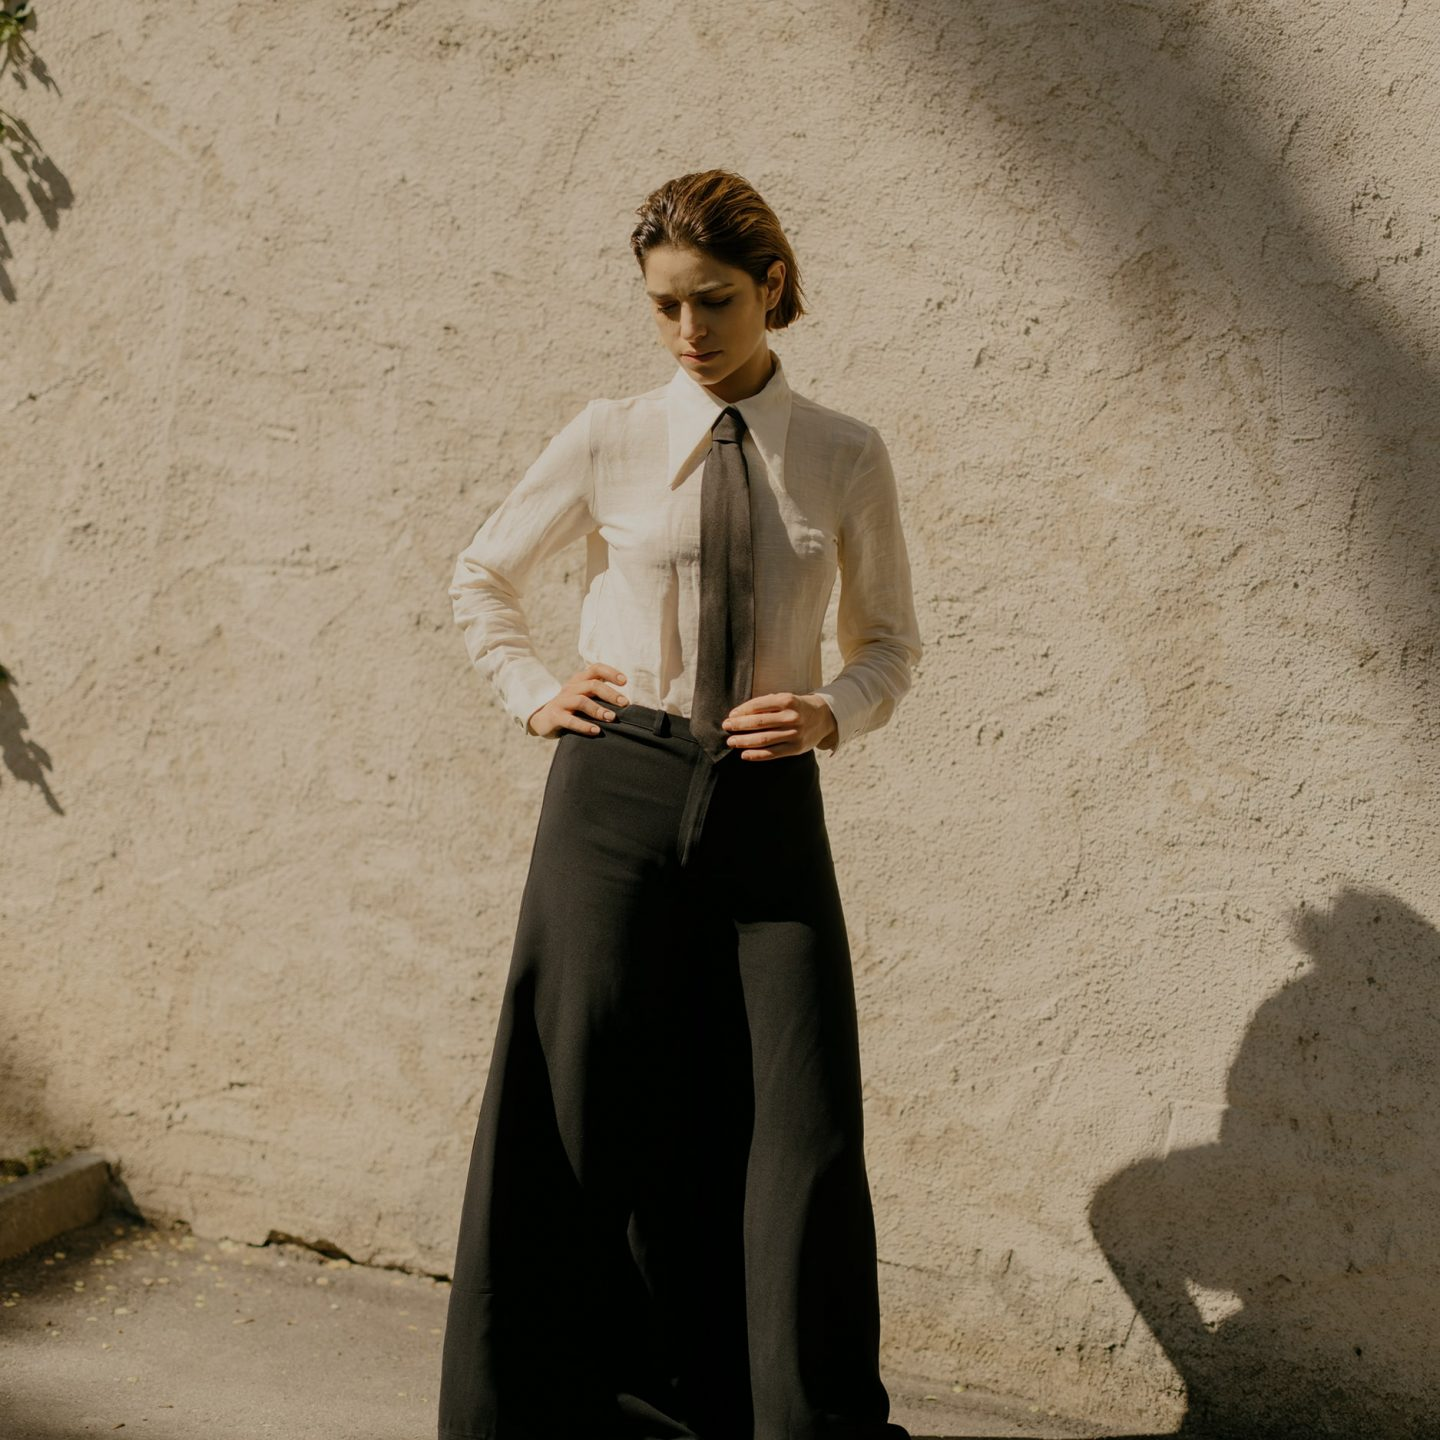 IGNANT-Photography-editorial-Emil-By-Rieger-5